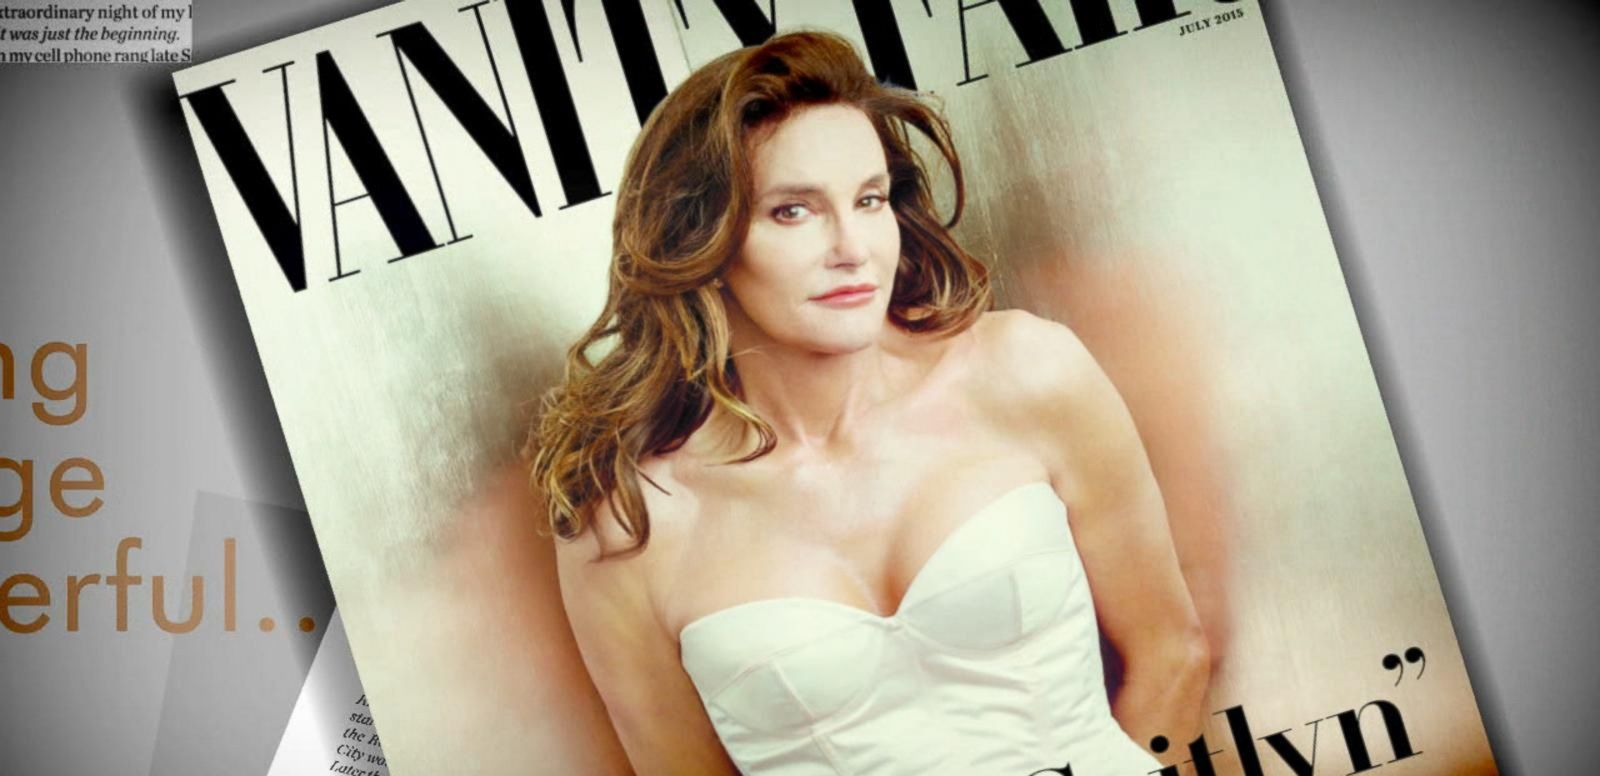 VIDEO: Vanity Fair Releases New Details About Caitlyn Jenner's Transformation